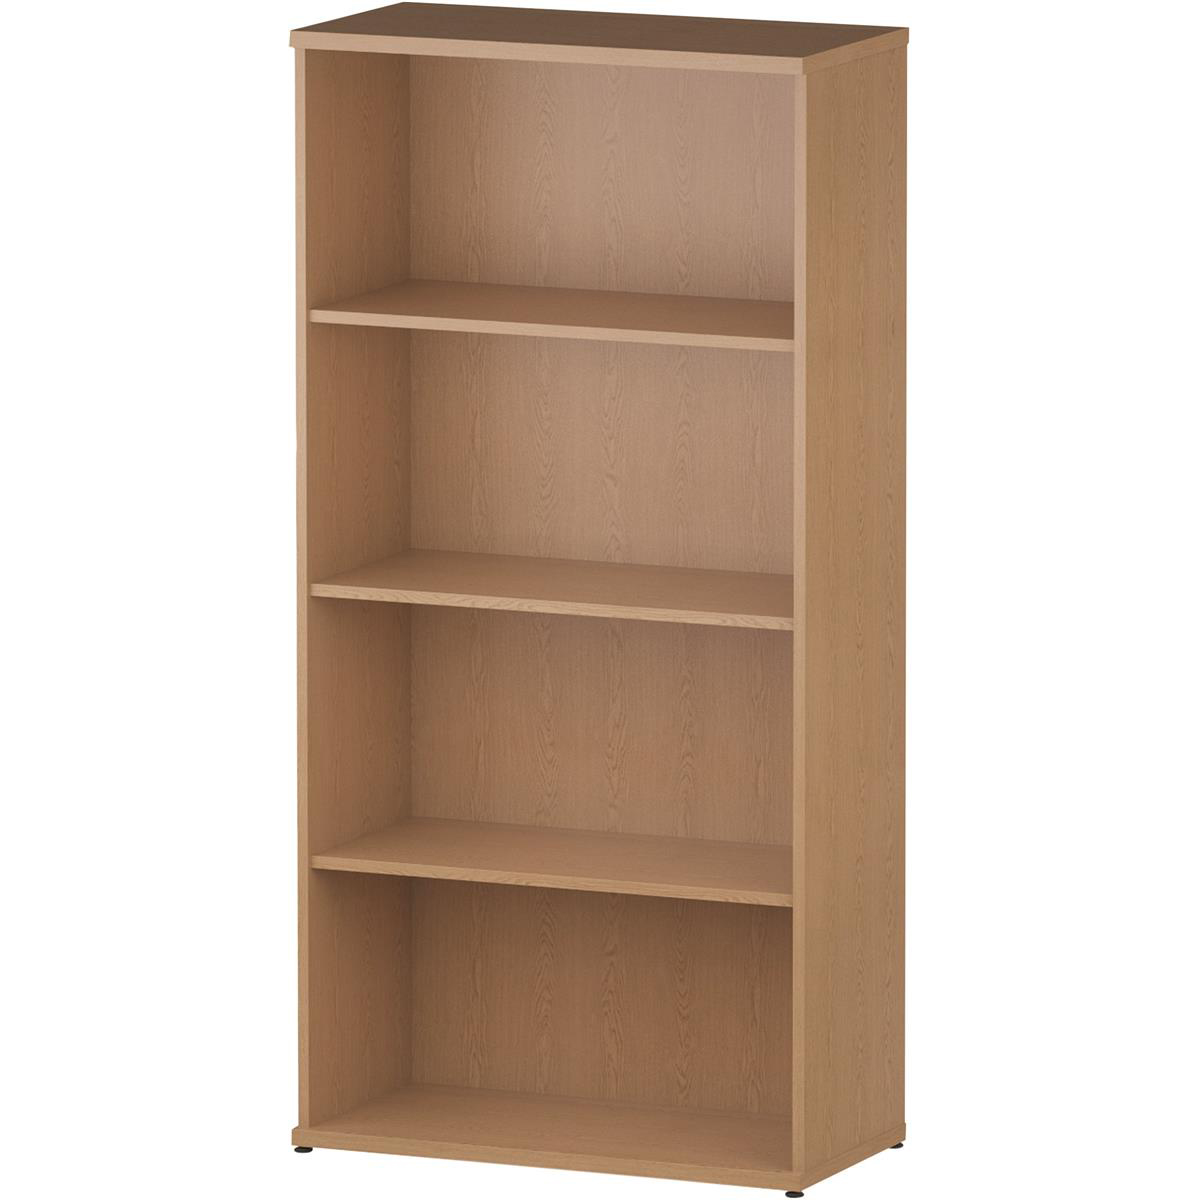 Trexus Office High Bookcase 800x400x1600mm 3 Shelves Oak Ref I000759